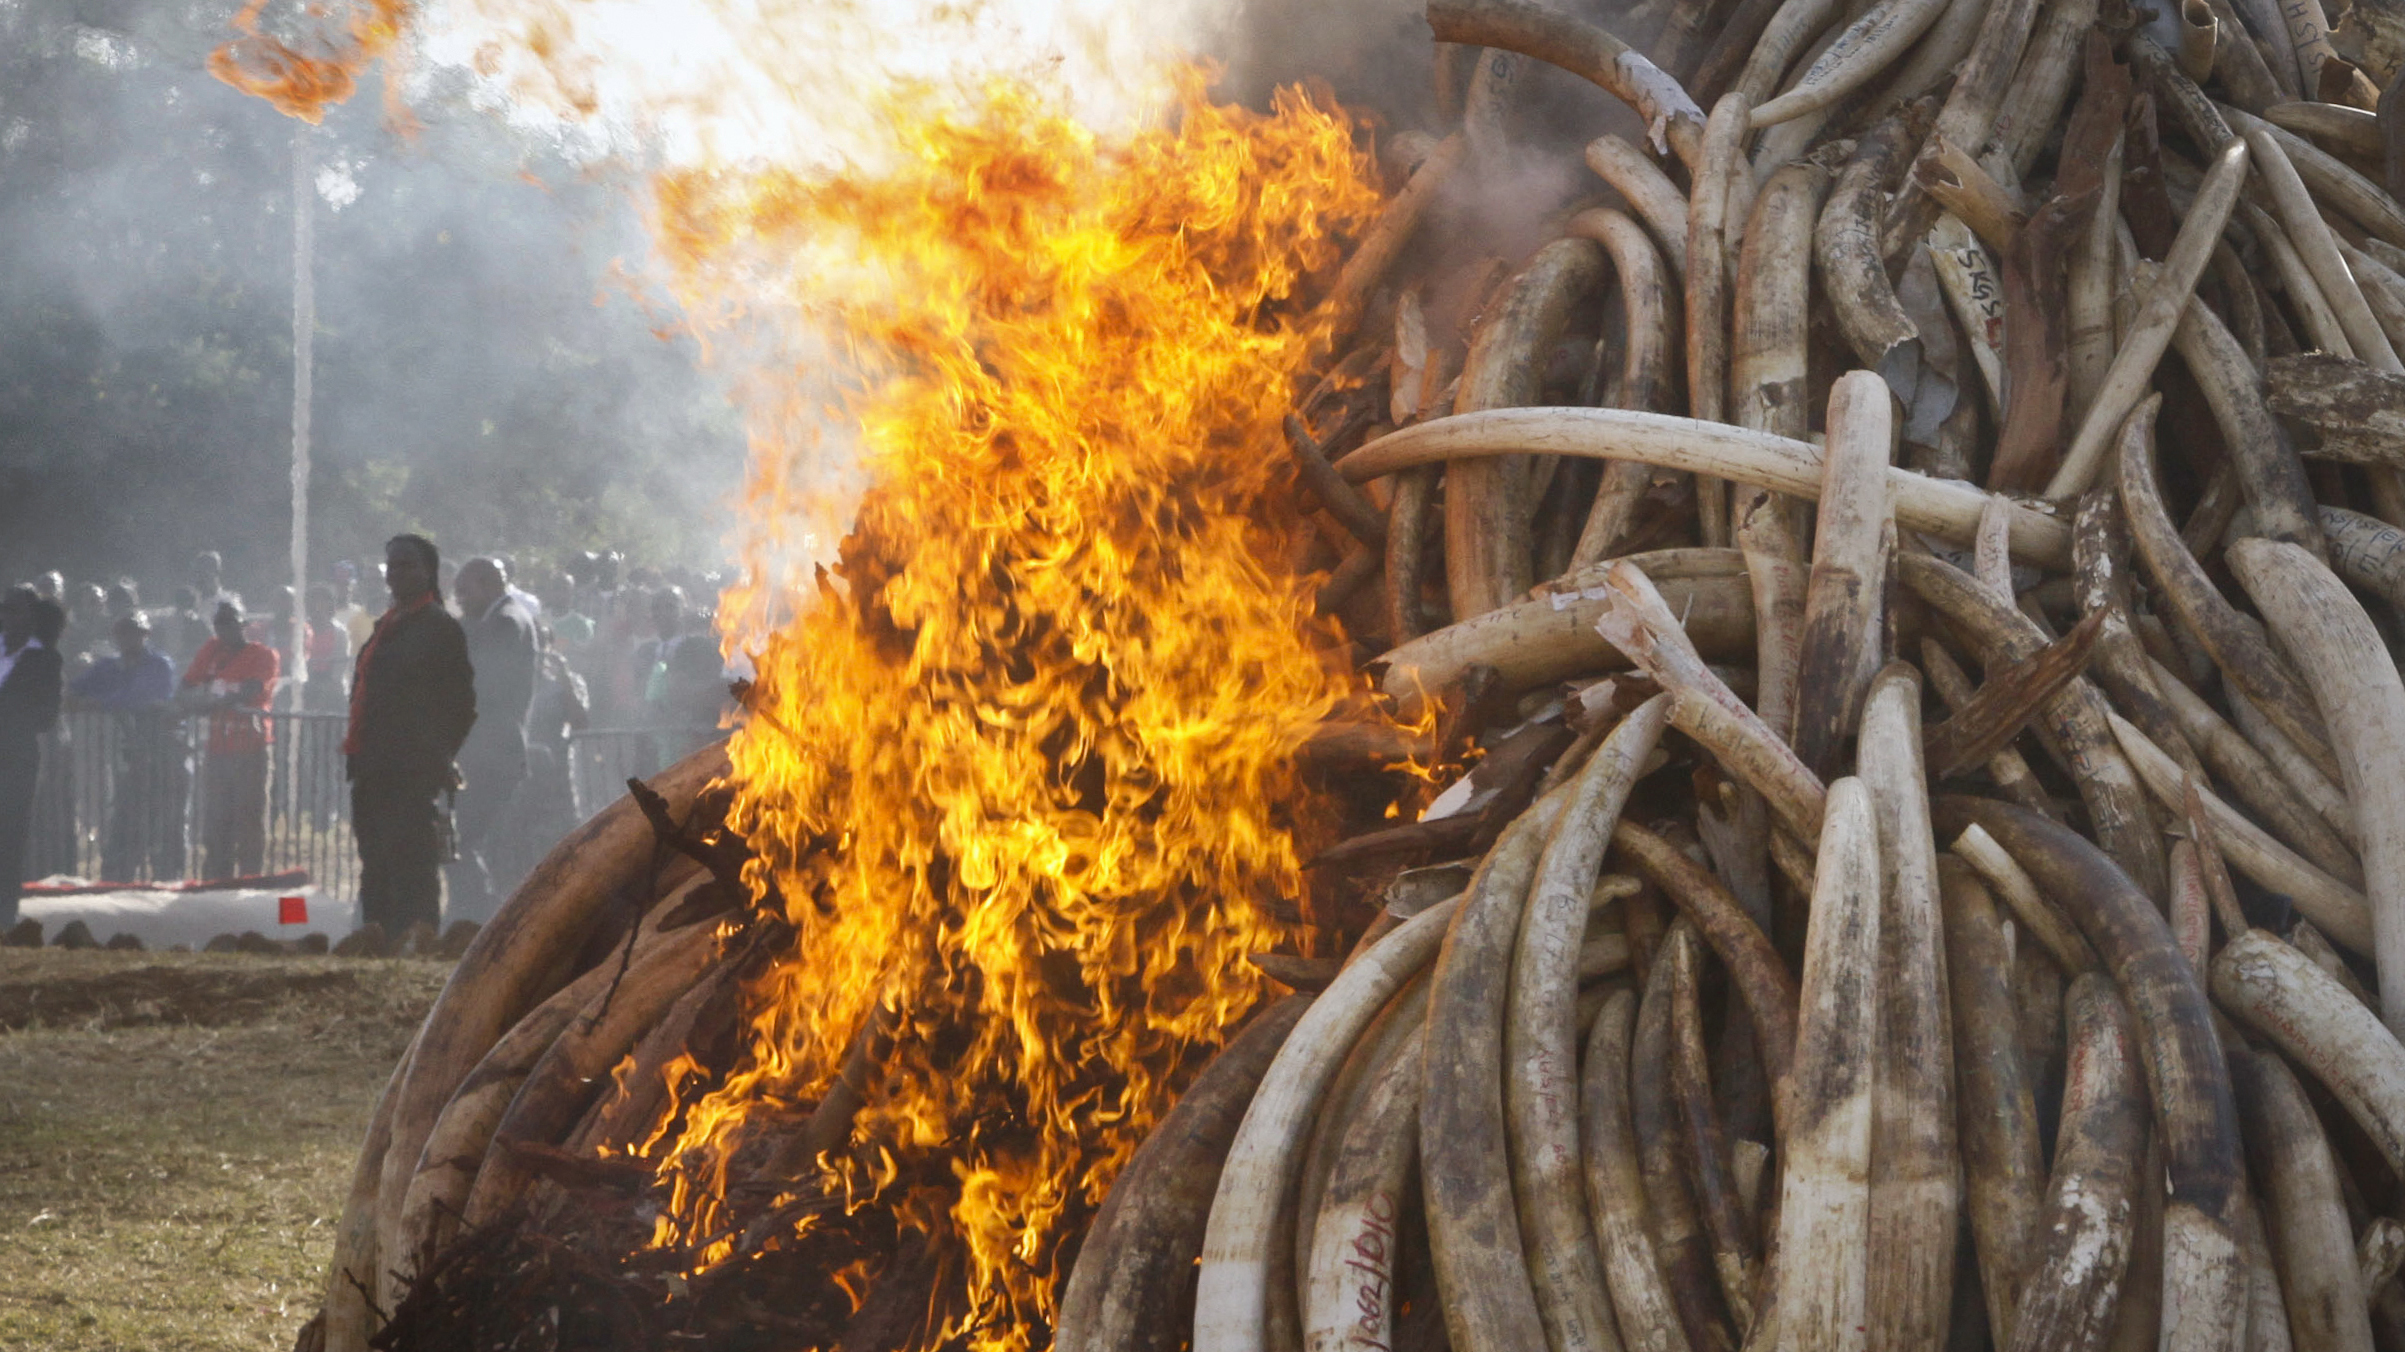 China Says It Will Shut Down Its Ivory Trade in 2017